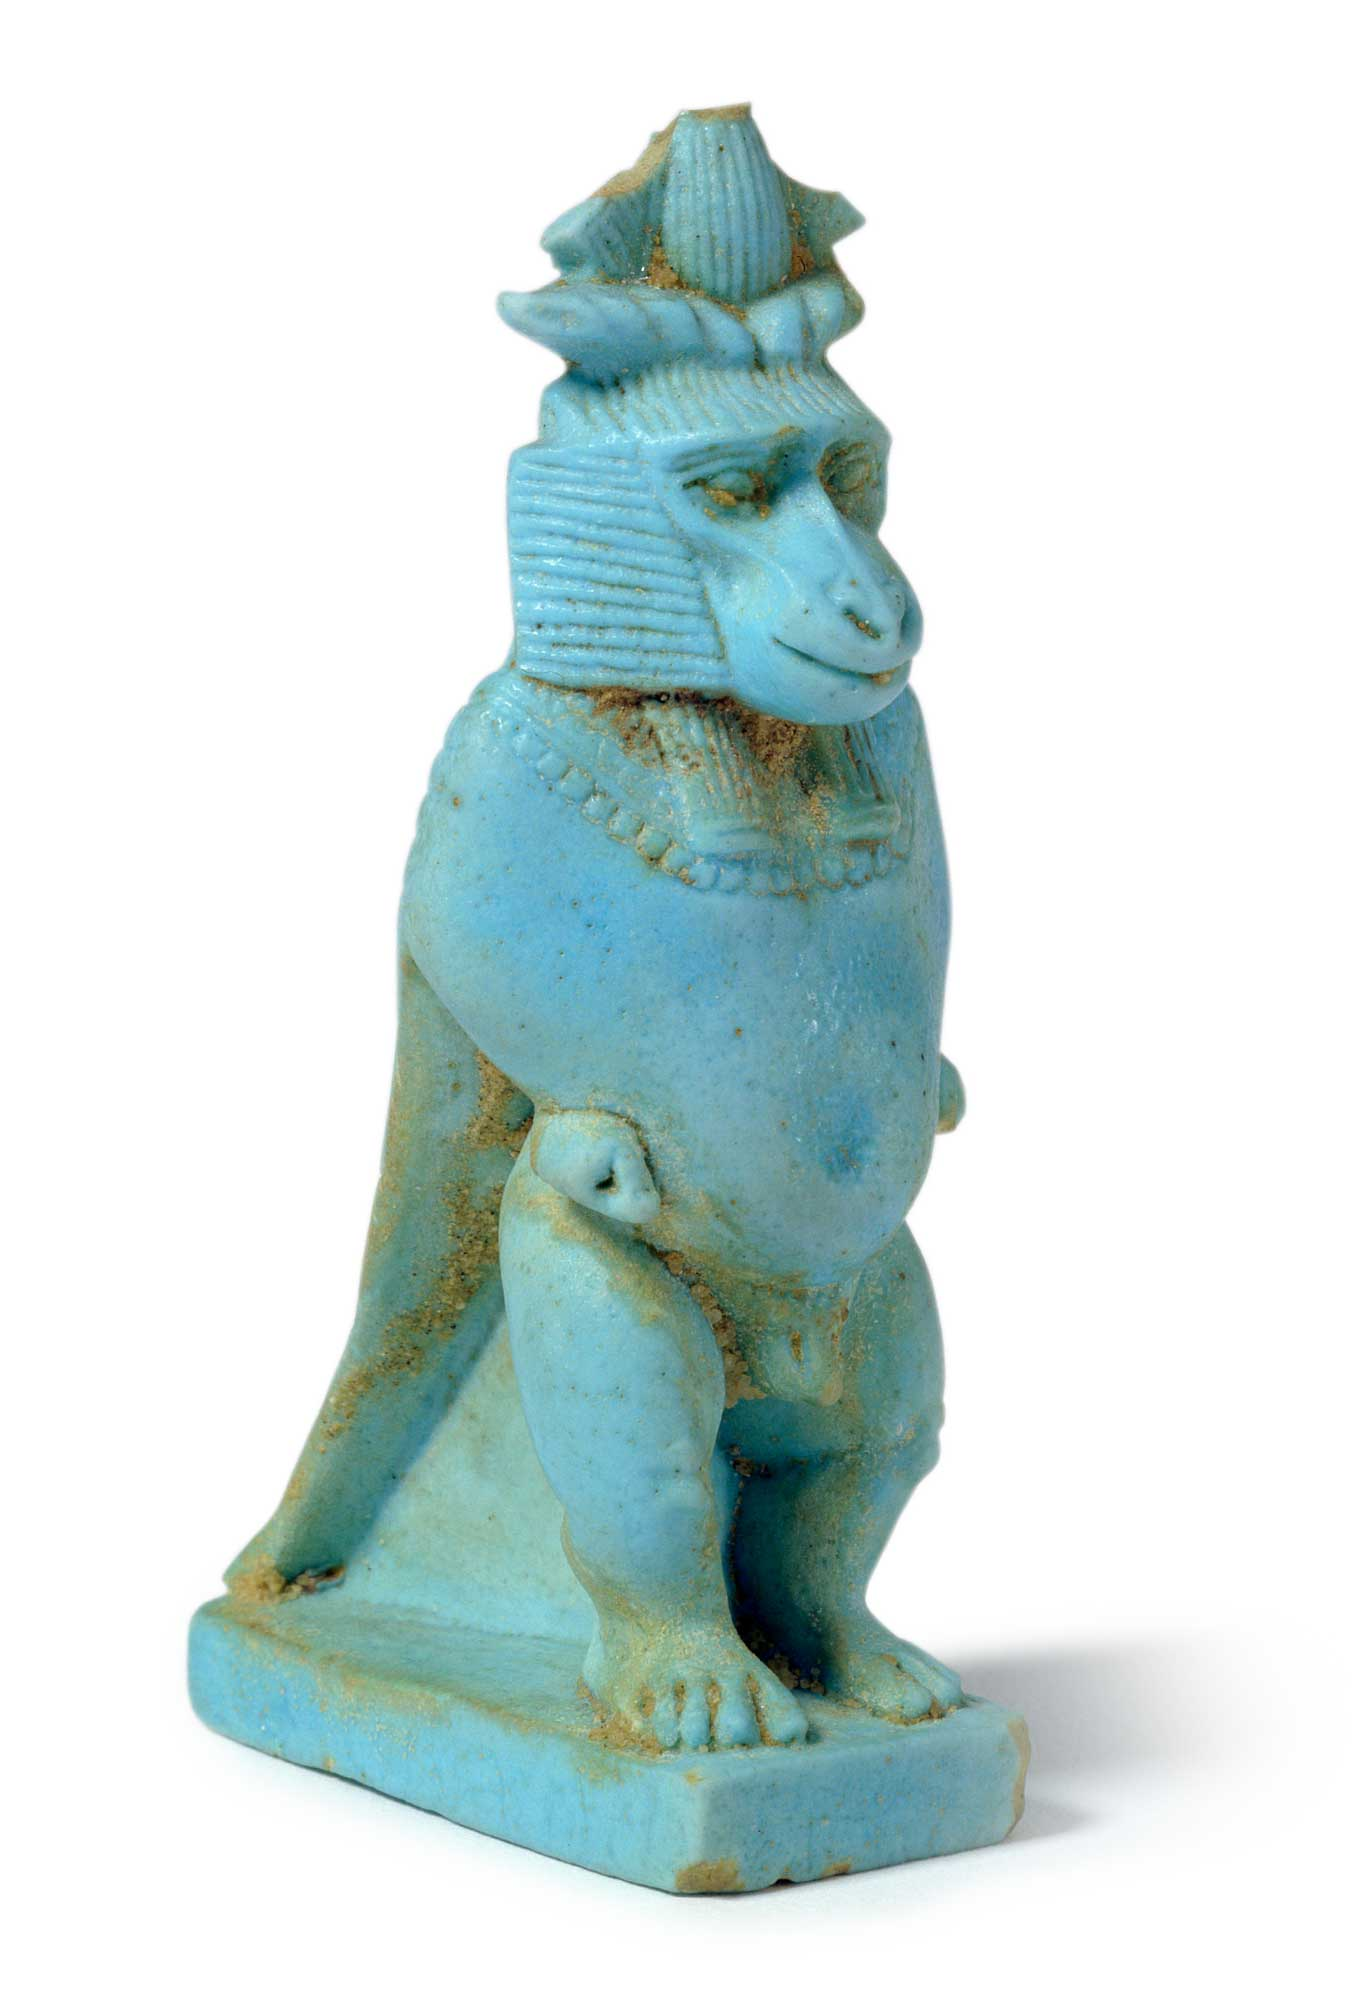 Egyptian monkey statue, c. 1st century AD Courtesy of the Metropolitan Museum of Art